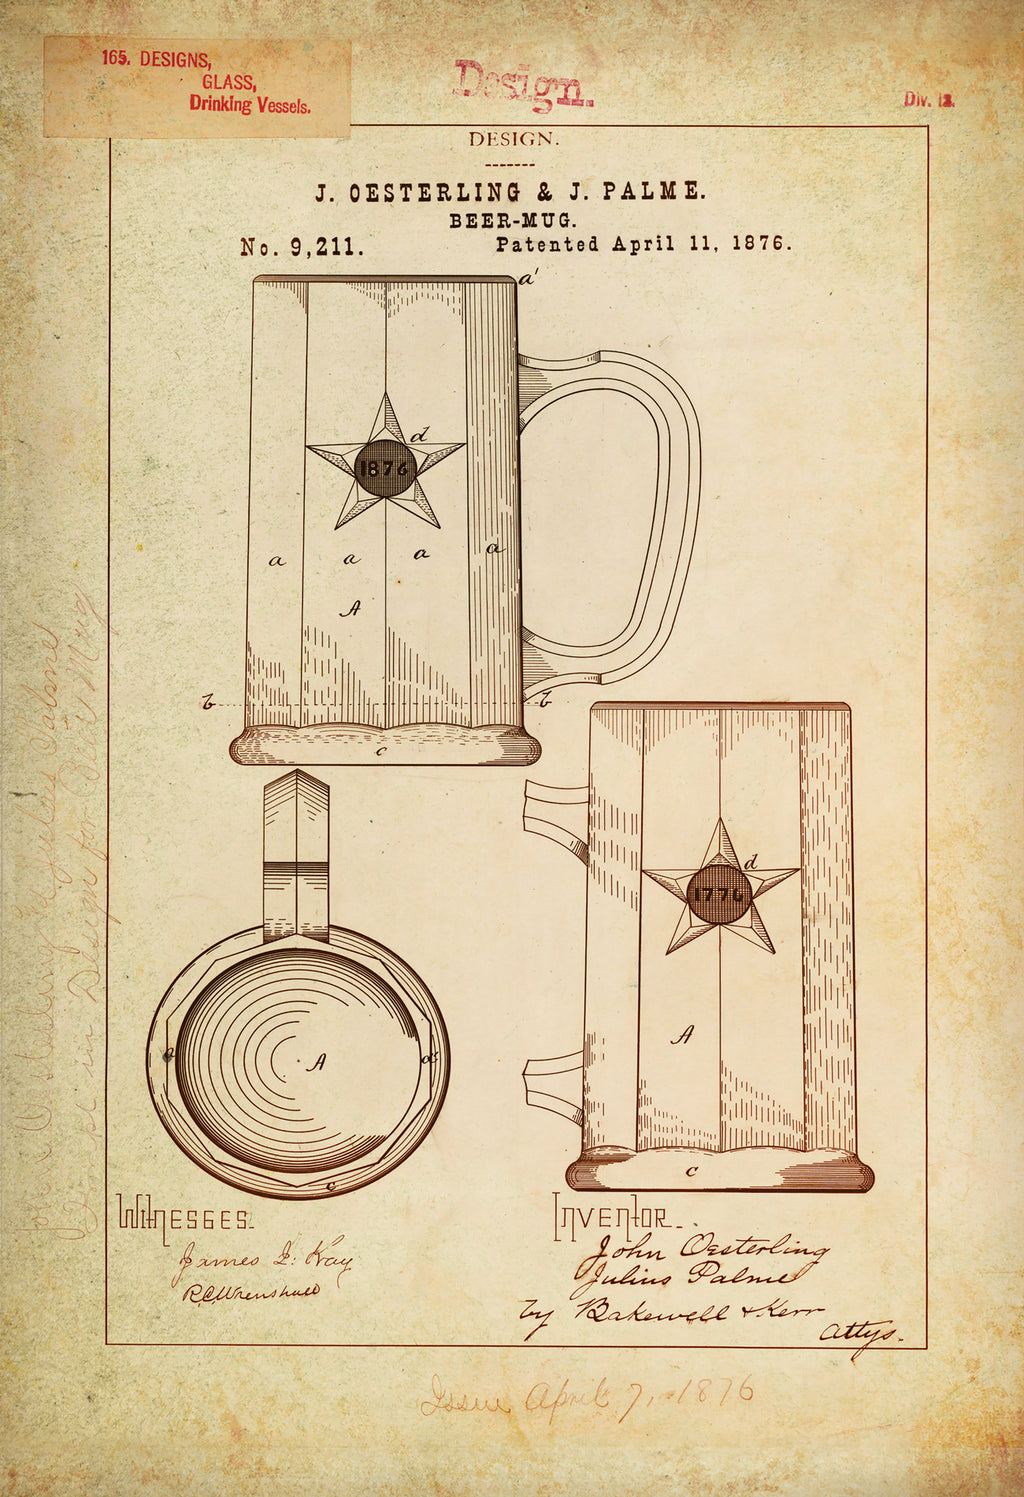 Beer Mug/Drinking Vessel Patent Poster Wall Decor (1876 by J. Oesterling & J. Palme)